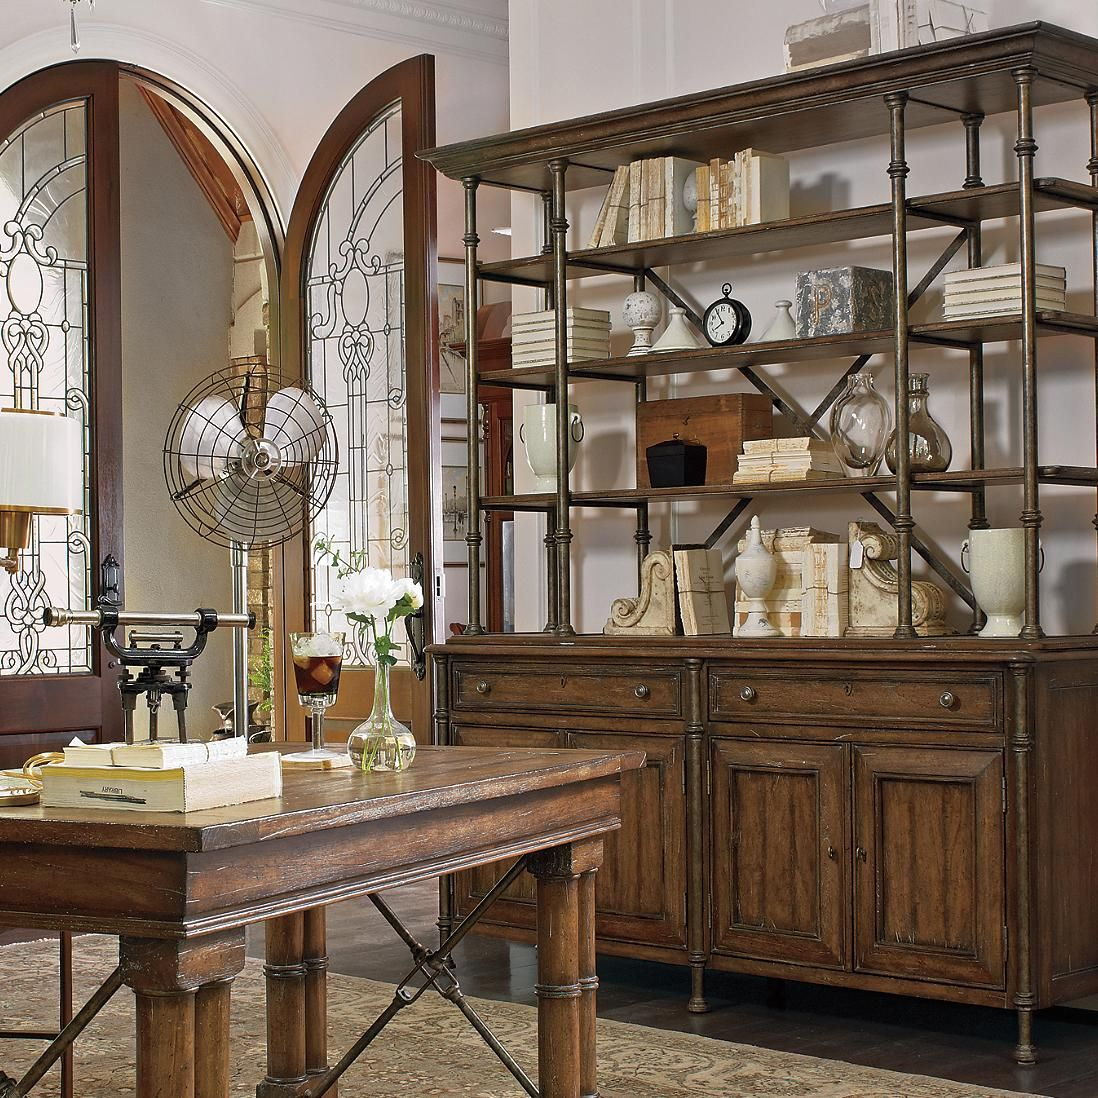 European Farmhouse Campagne Cabinet #HudsonsFurniture Would Love To Use In  The Kitchen Filled With White Dishes